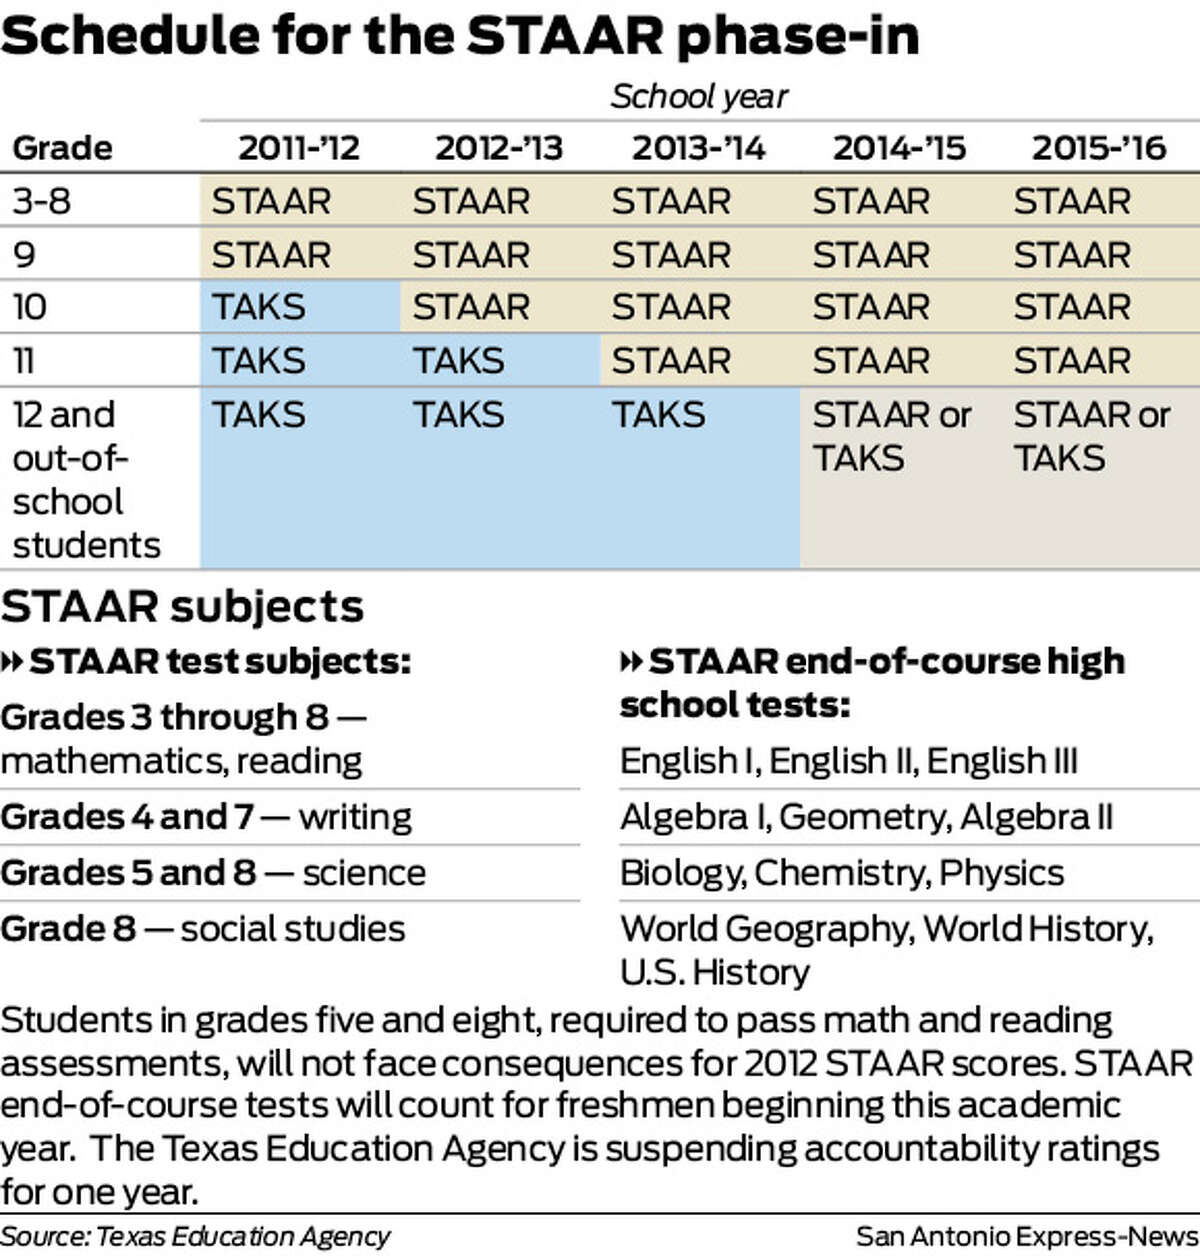 Schedule for the STAAR phase-in